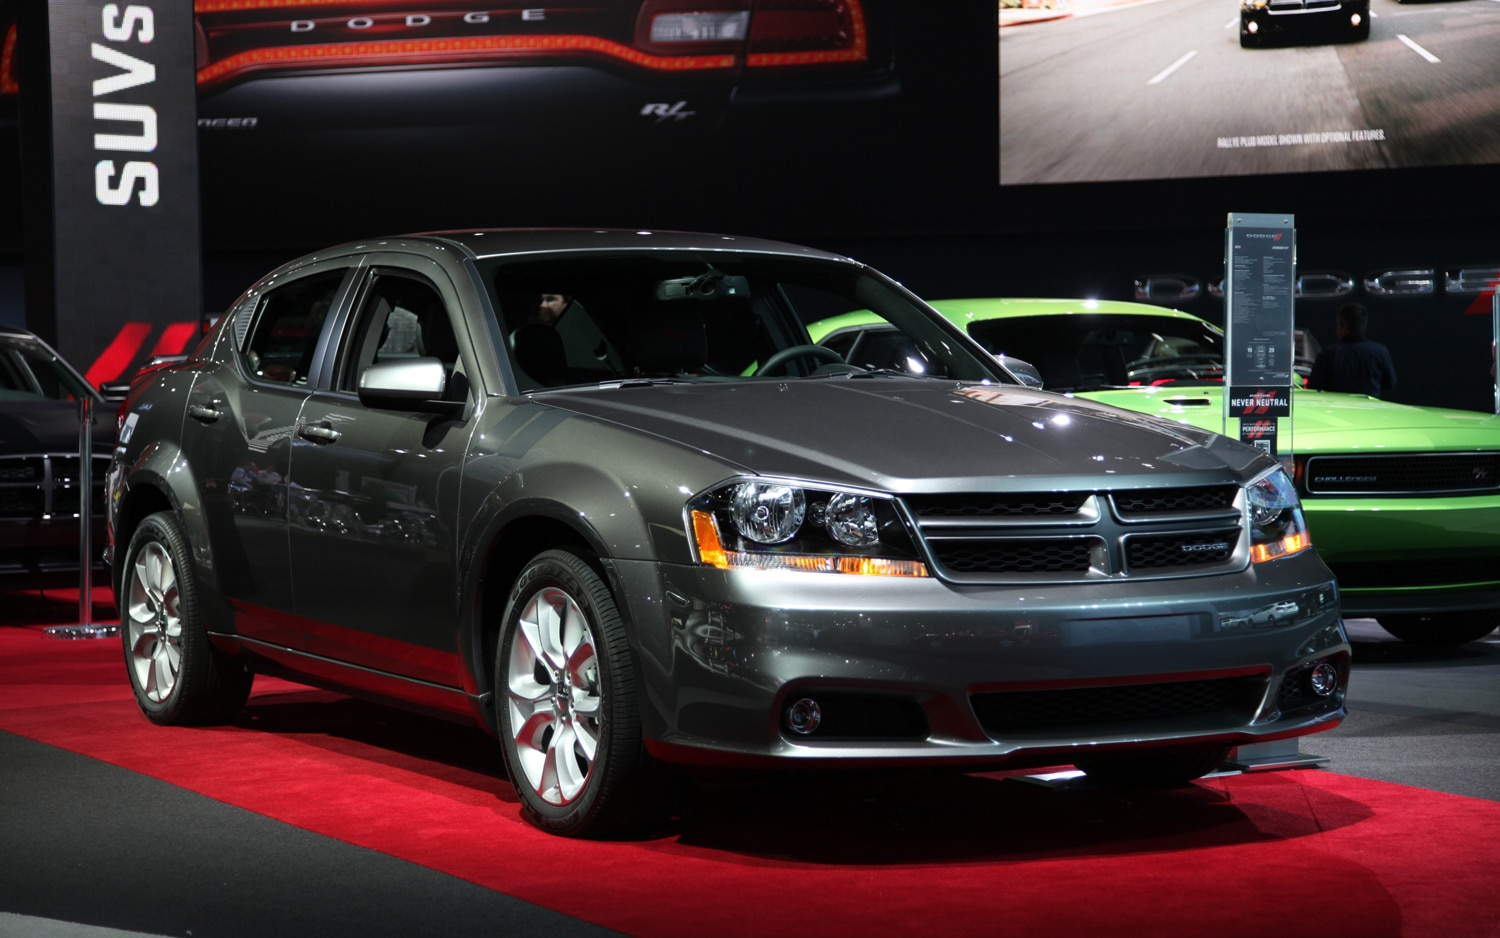 2012 Dodge Avenger RT Front Three Quarters1